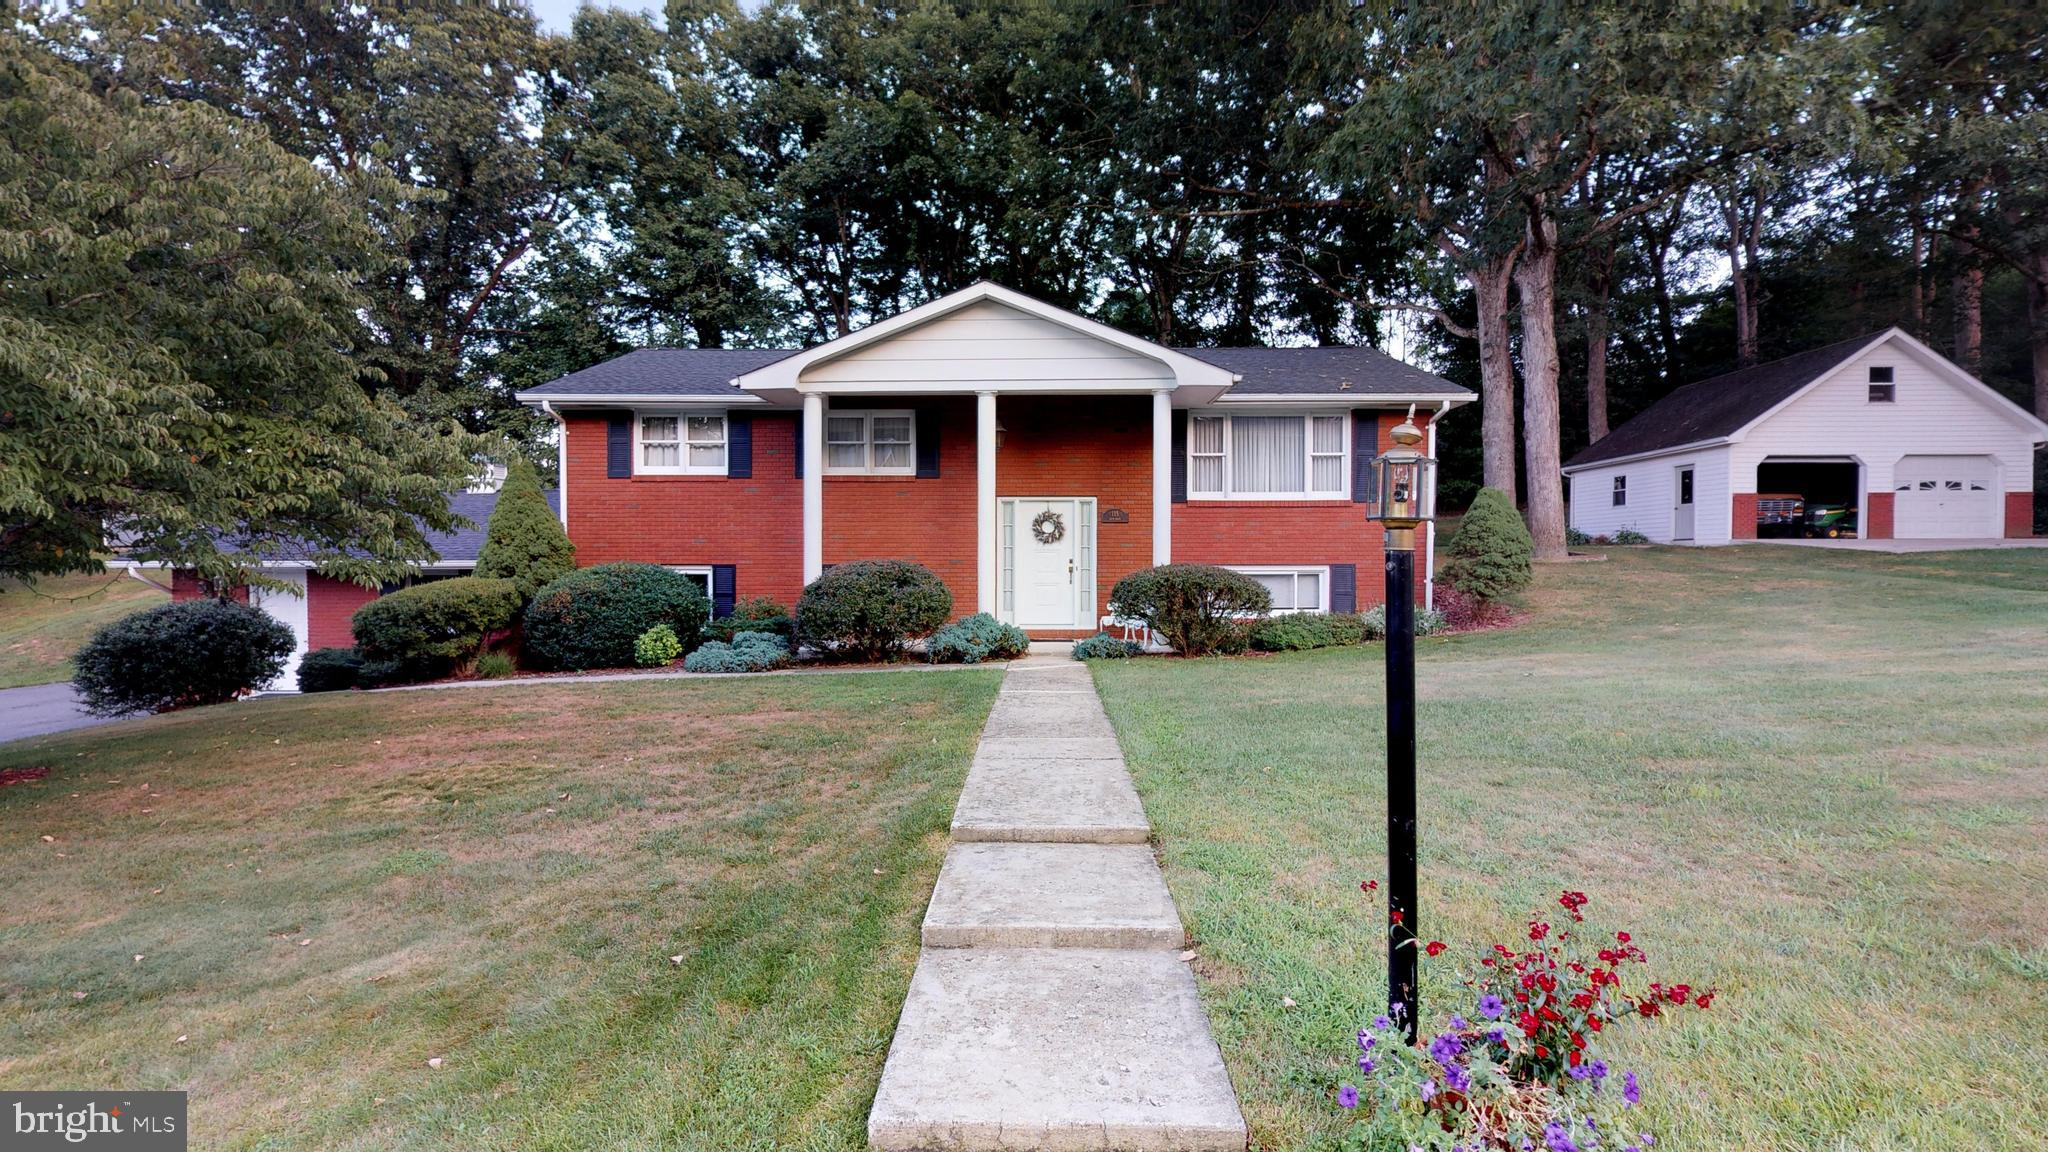 115 LEON DRIVE, FORT ASHBY, WV 26719